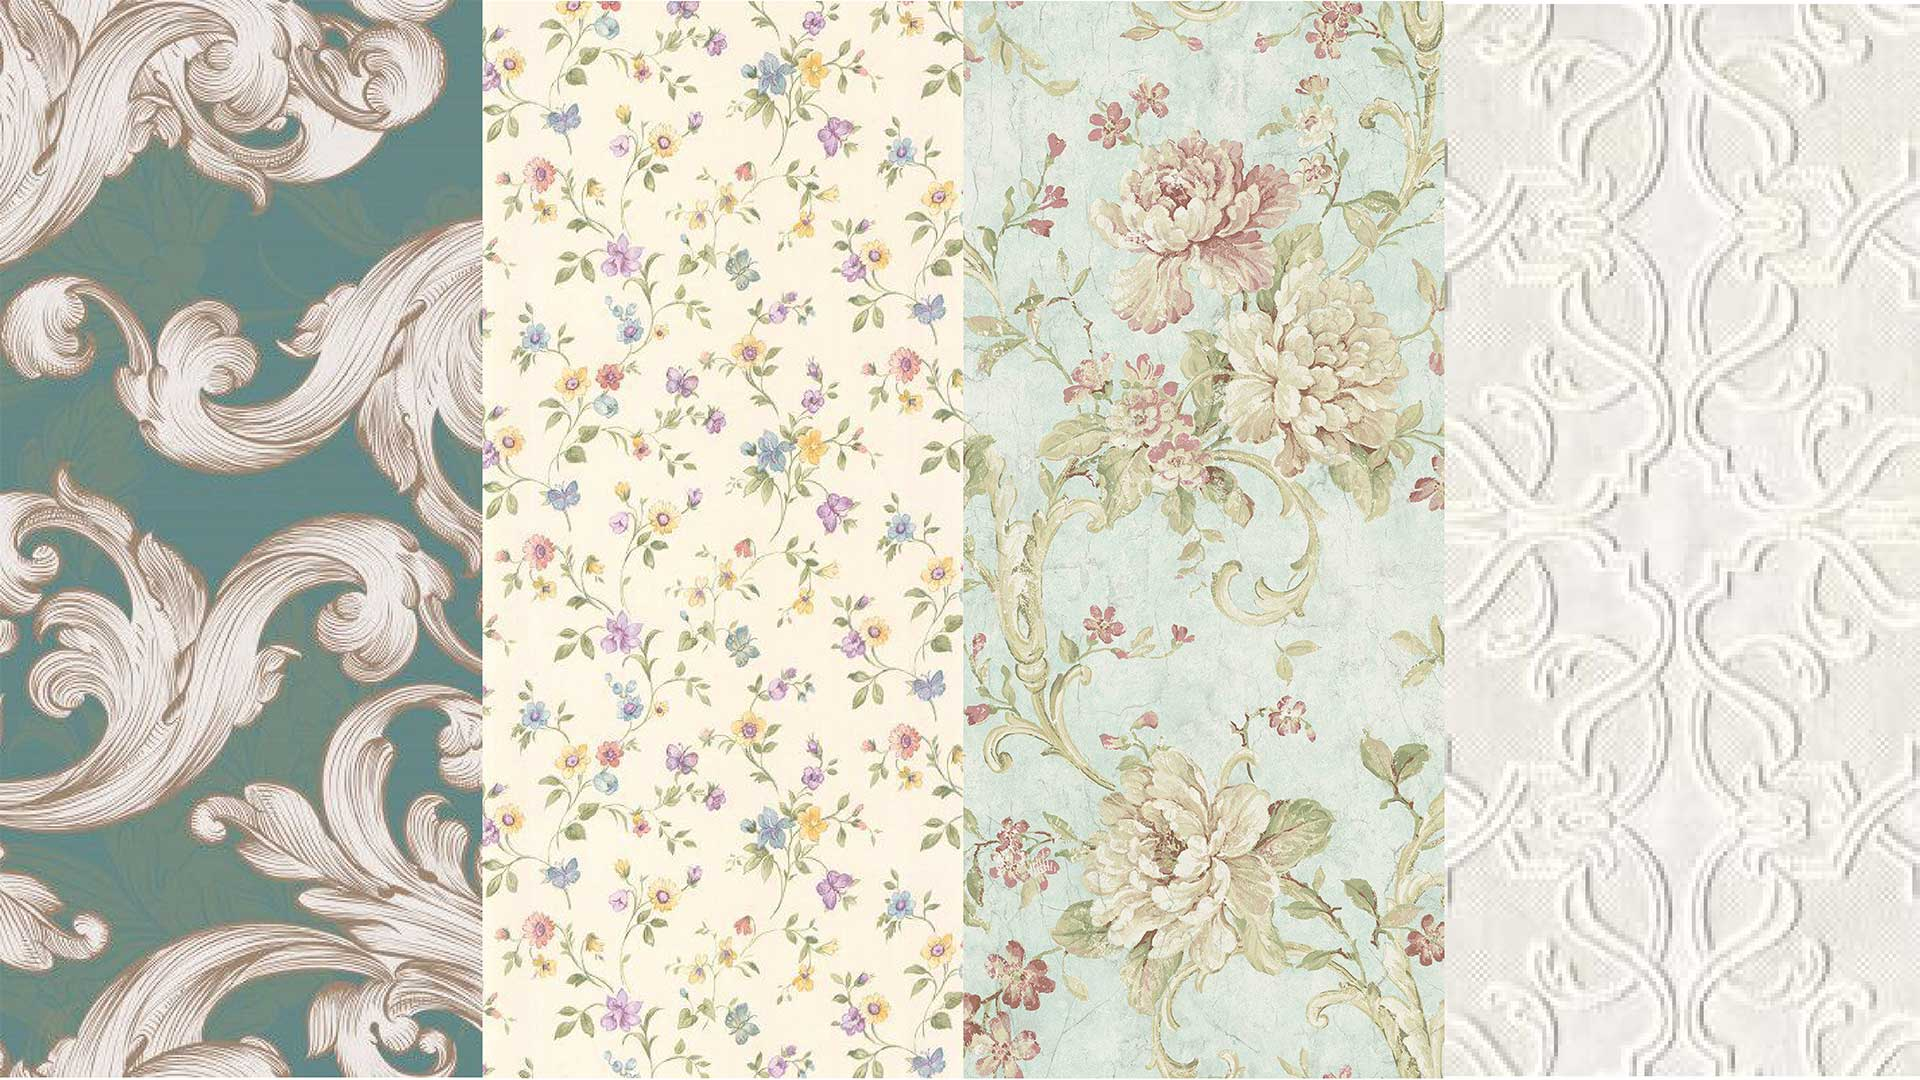 A collection of small and large floral prints in soft pastel colors.